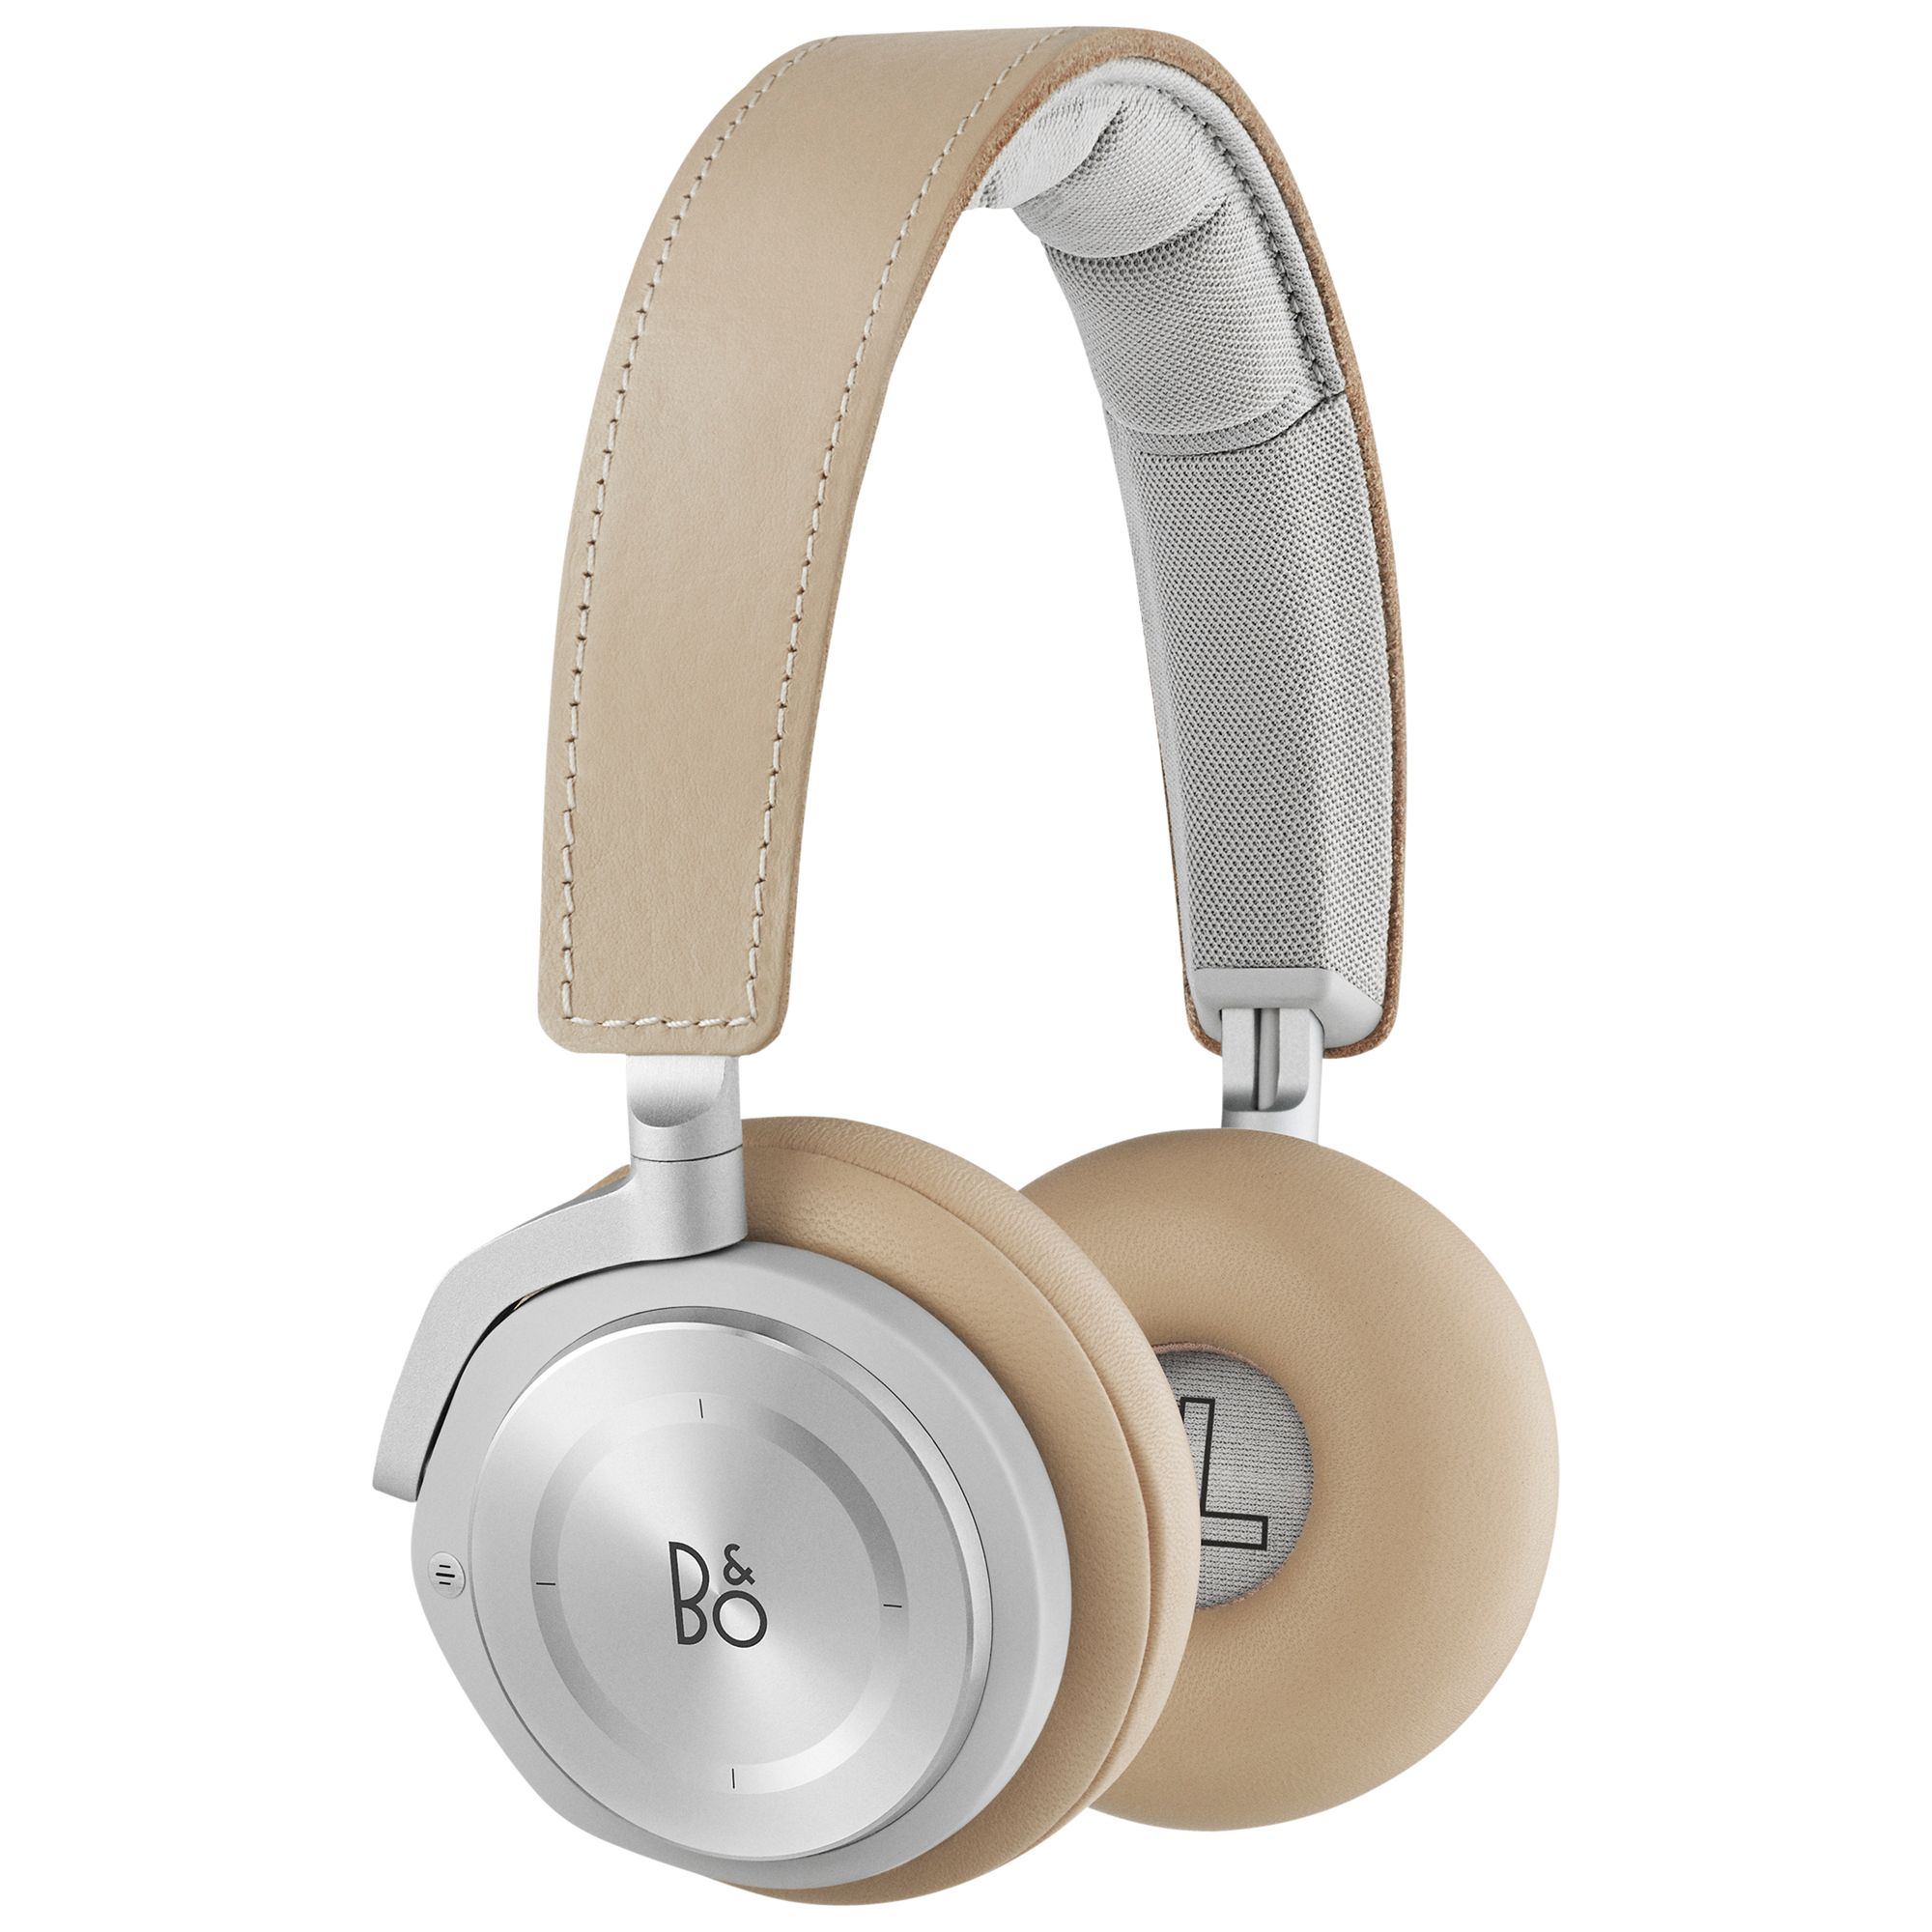 Bang & Olufsen B&O PLAY by Bang & Olufsen Beoplay H8 Wireless Bluetooth Active Noise Cancelling On-Ear Headphones with Intuitive Touch Controls